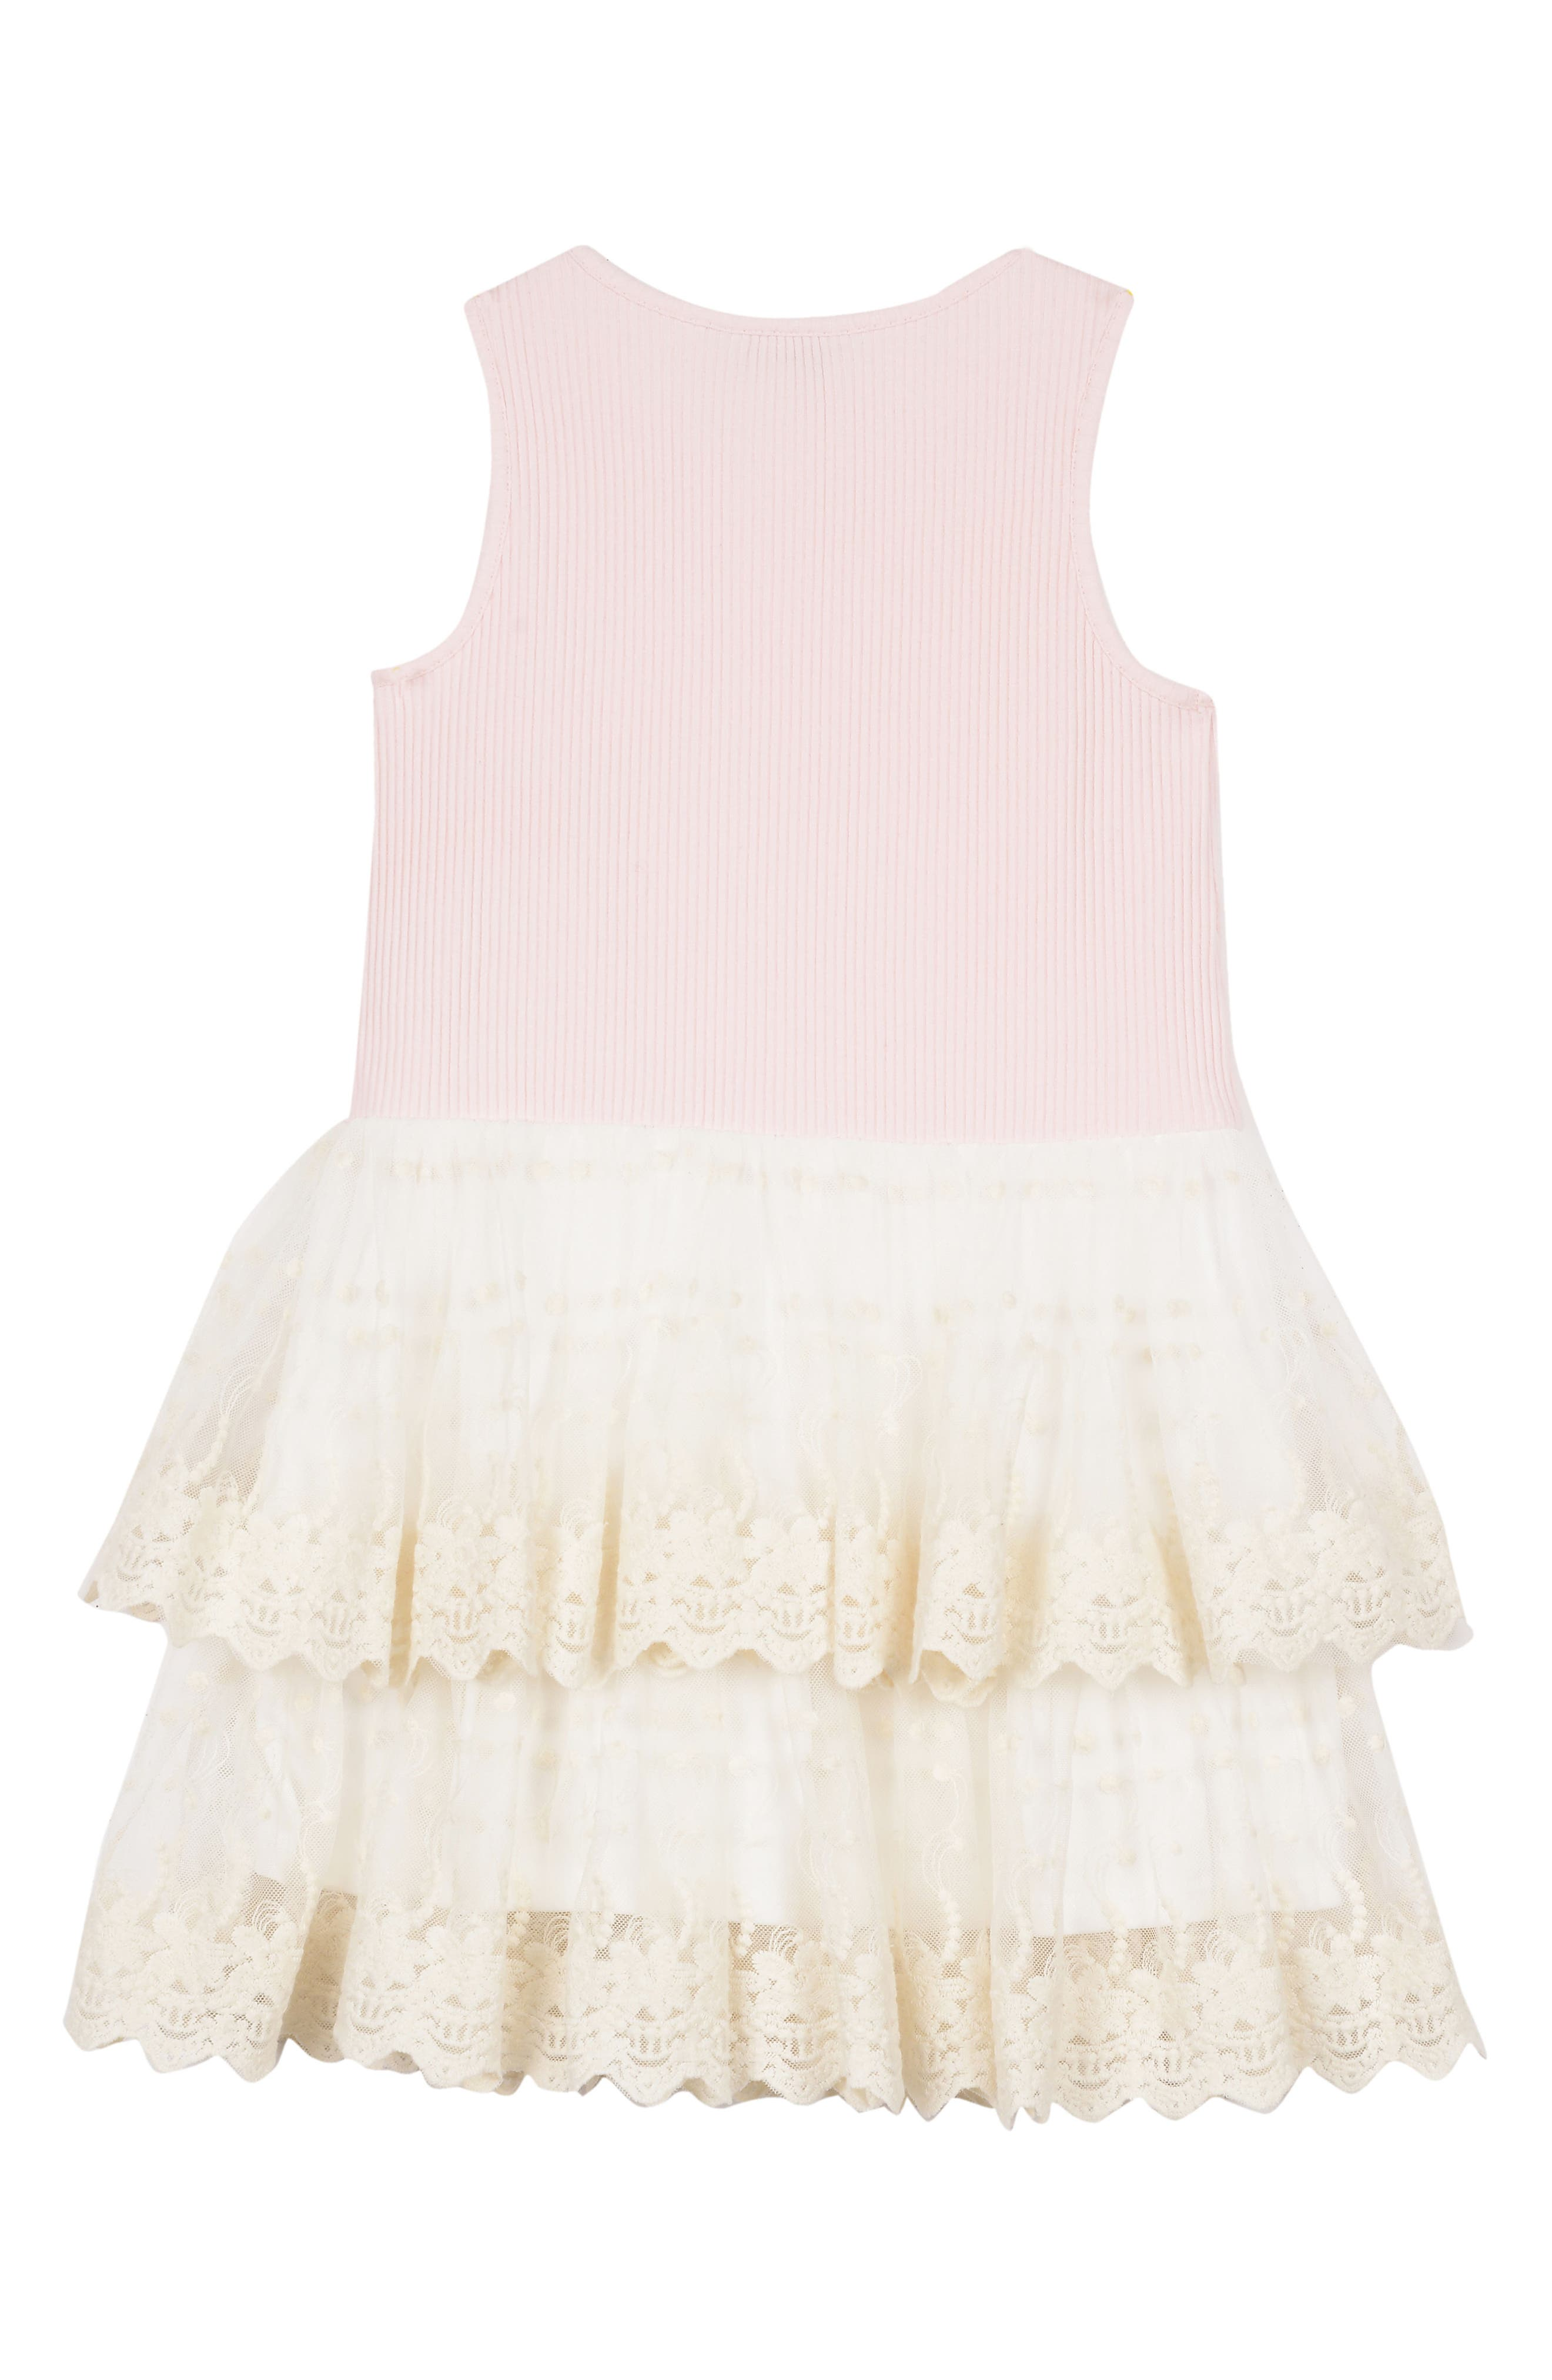 Tiered Dress,                             Alternate thumbnail 2, color,                             PINK